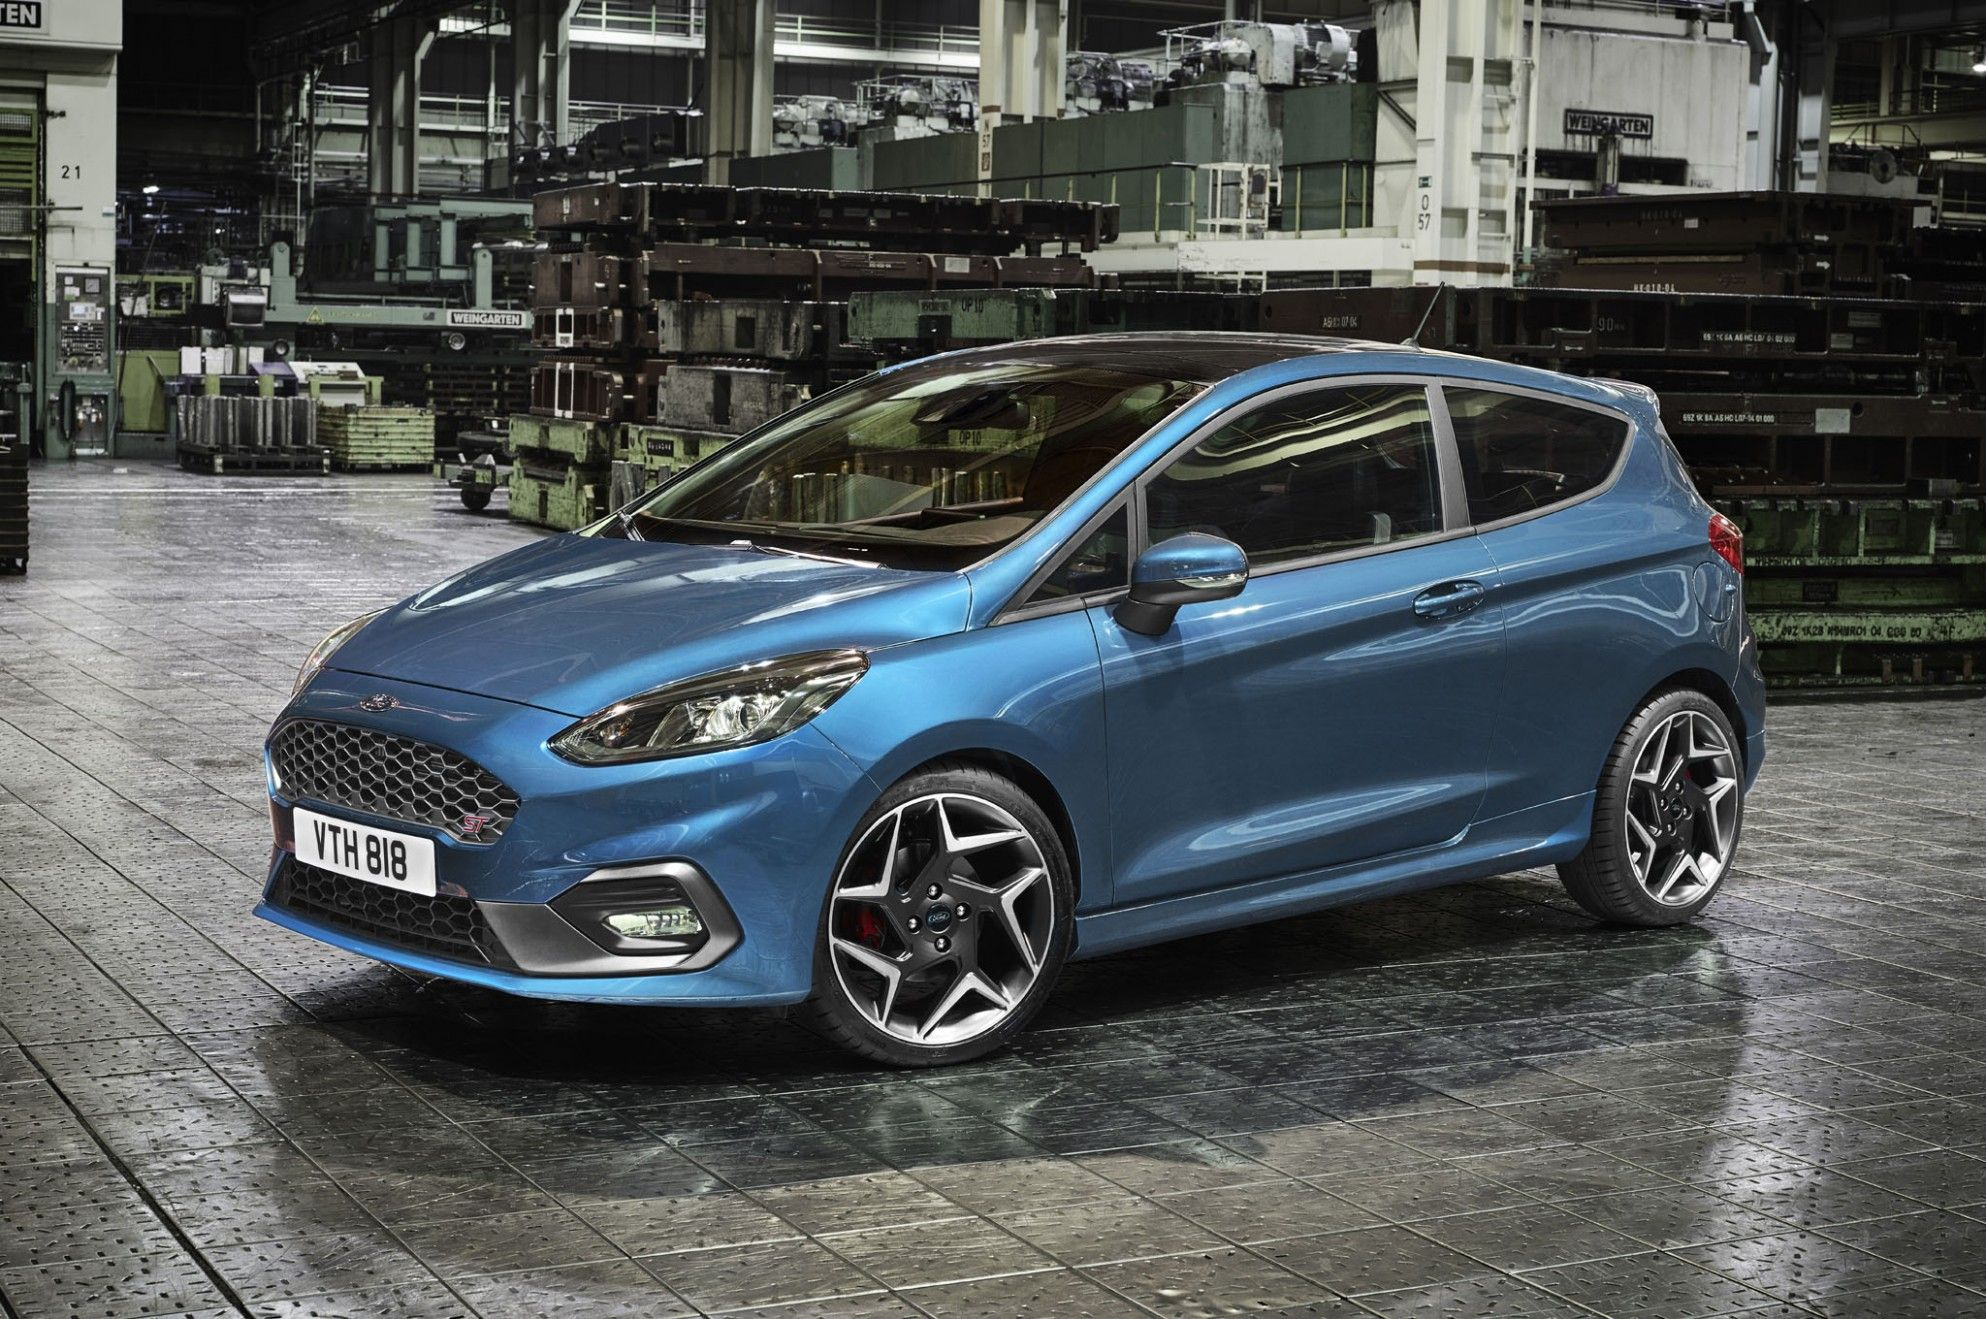 2021 Ford Fiesta Price and Release date